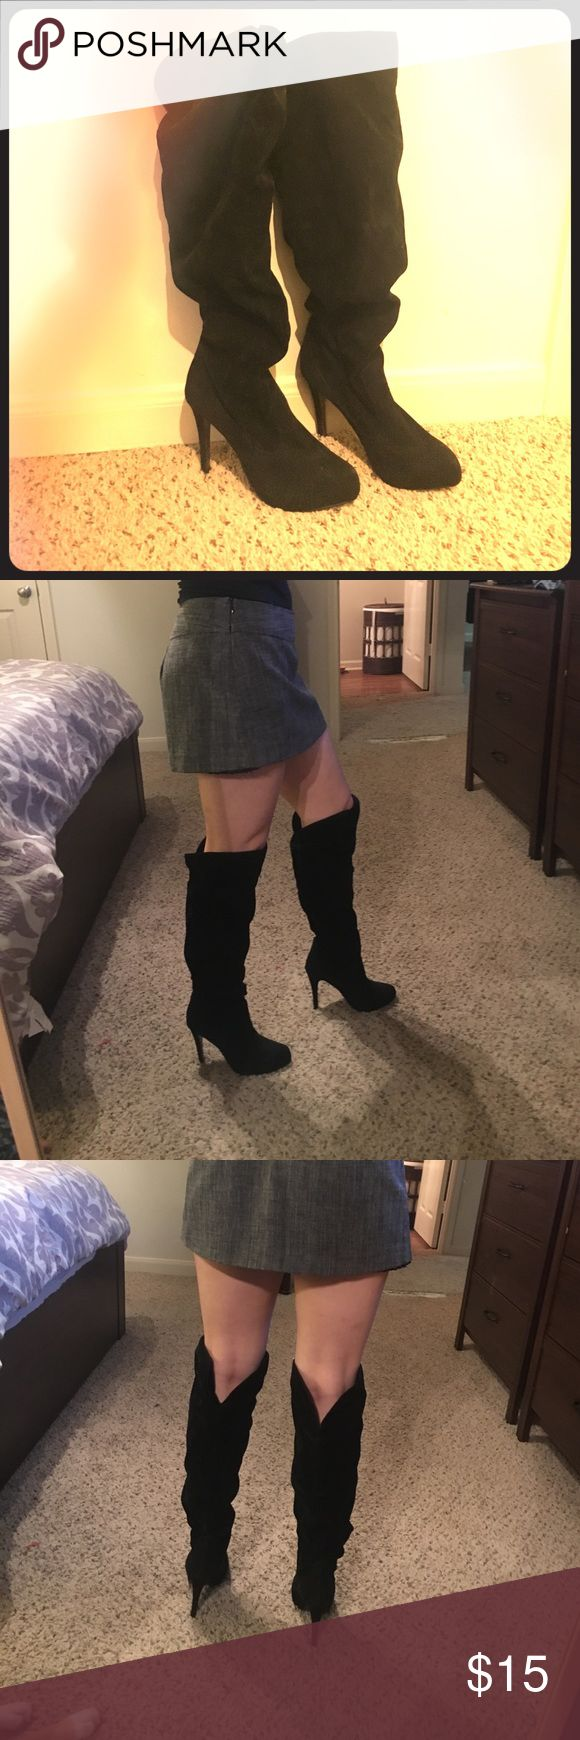 Over the knee boots size 7 Black, 3 inch, over the knee velvet material boots size 7. Never been worn, wasting away in my closet in need of a new loving home 😊 It first loosely to create a textured/scrunchie look around the calves. Take them away from me ladies!! Shoes Over the Knee Boots